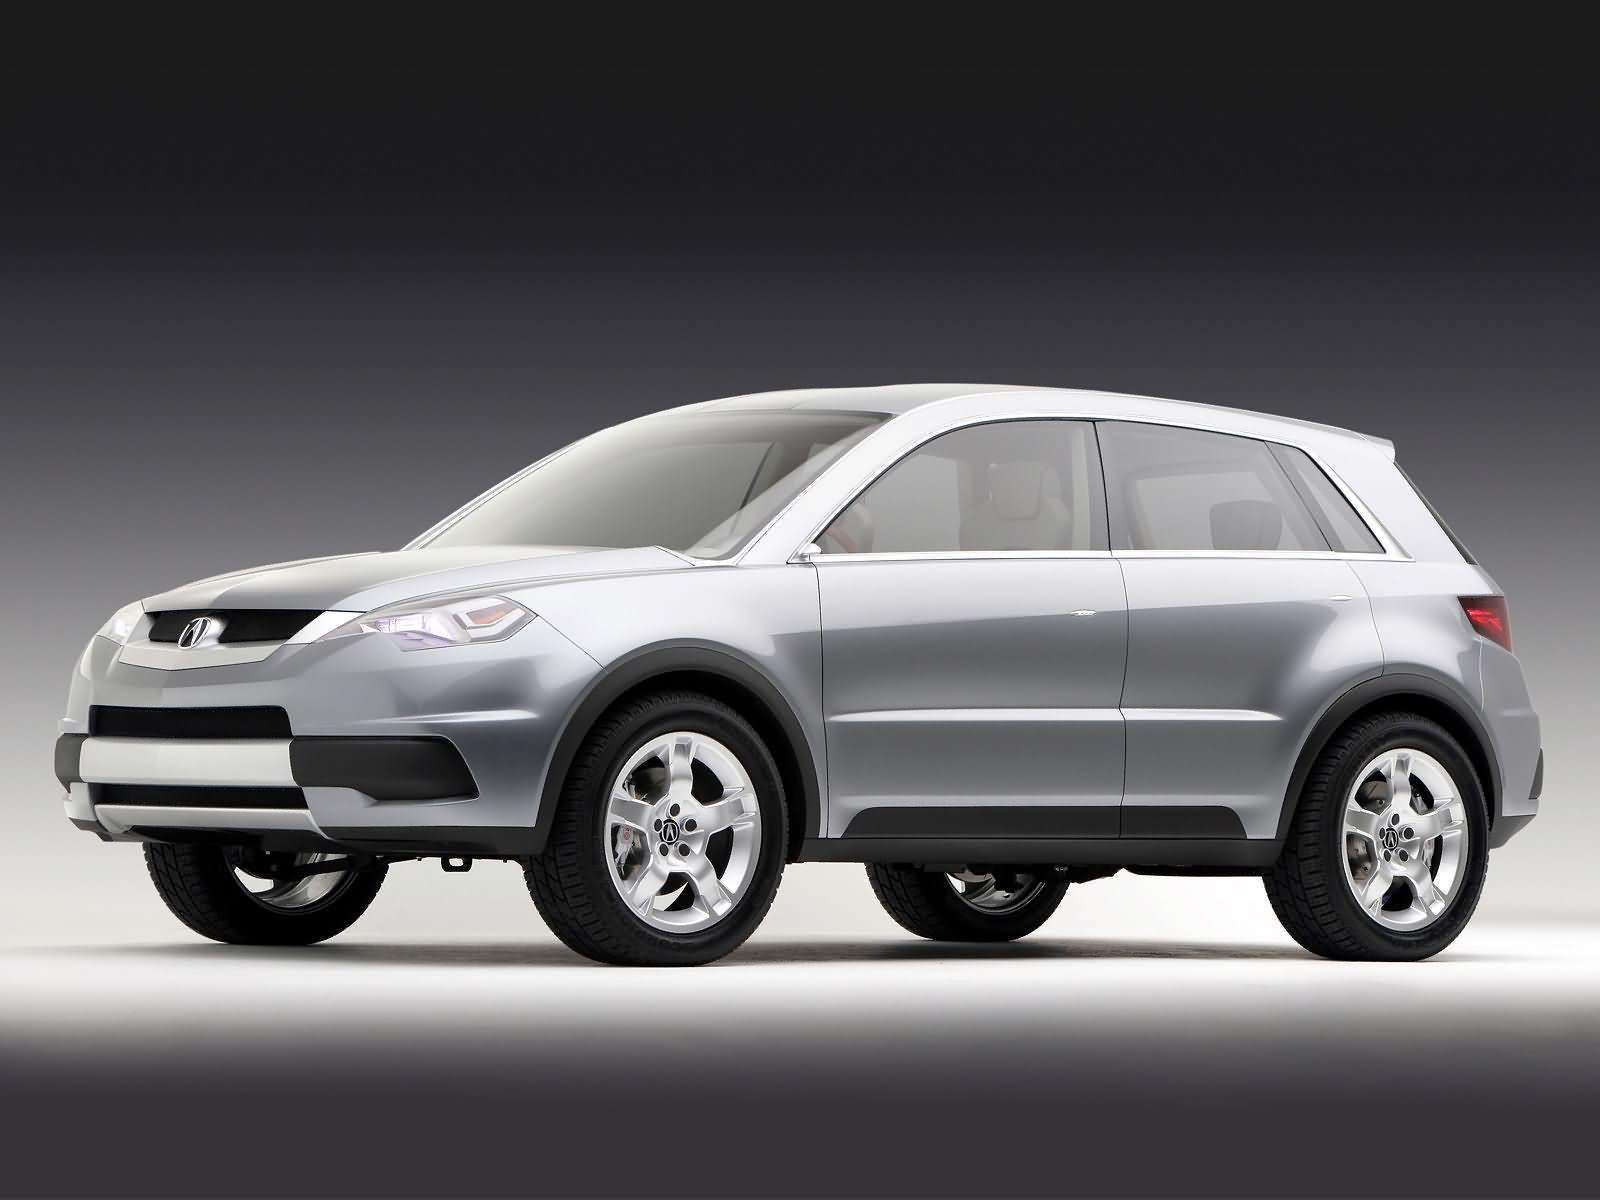 Latest 2005 Acura Rdx Concept Japanese Car Photos Free Download